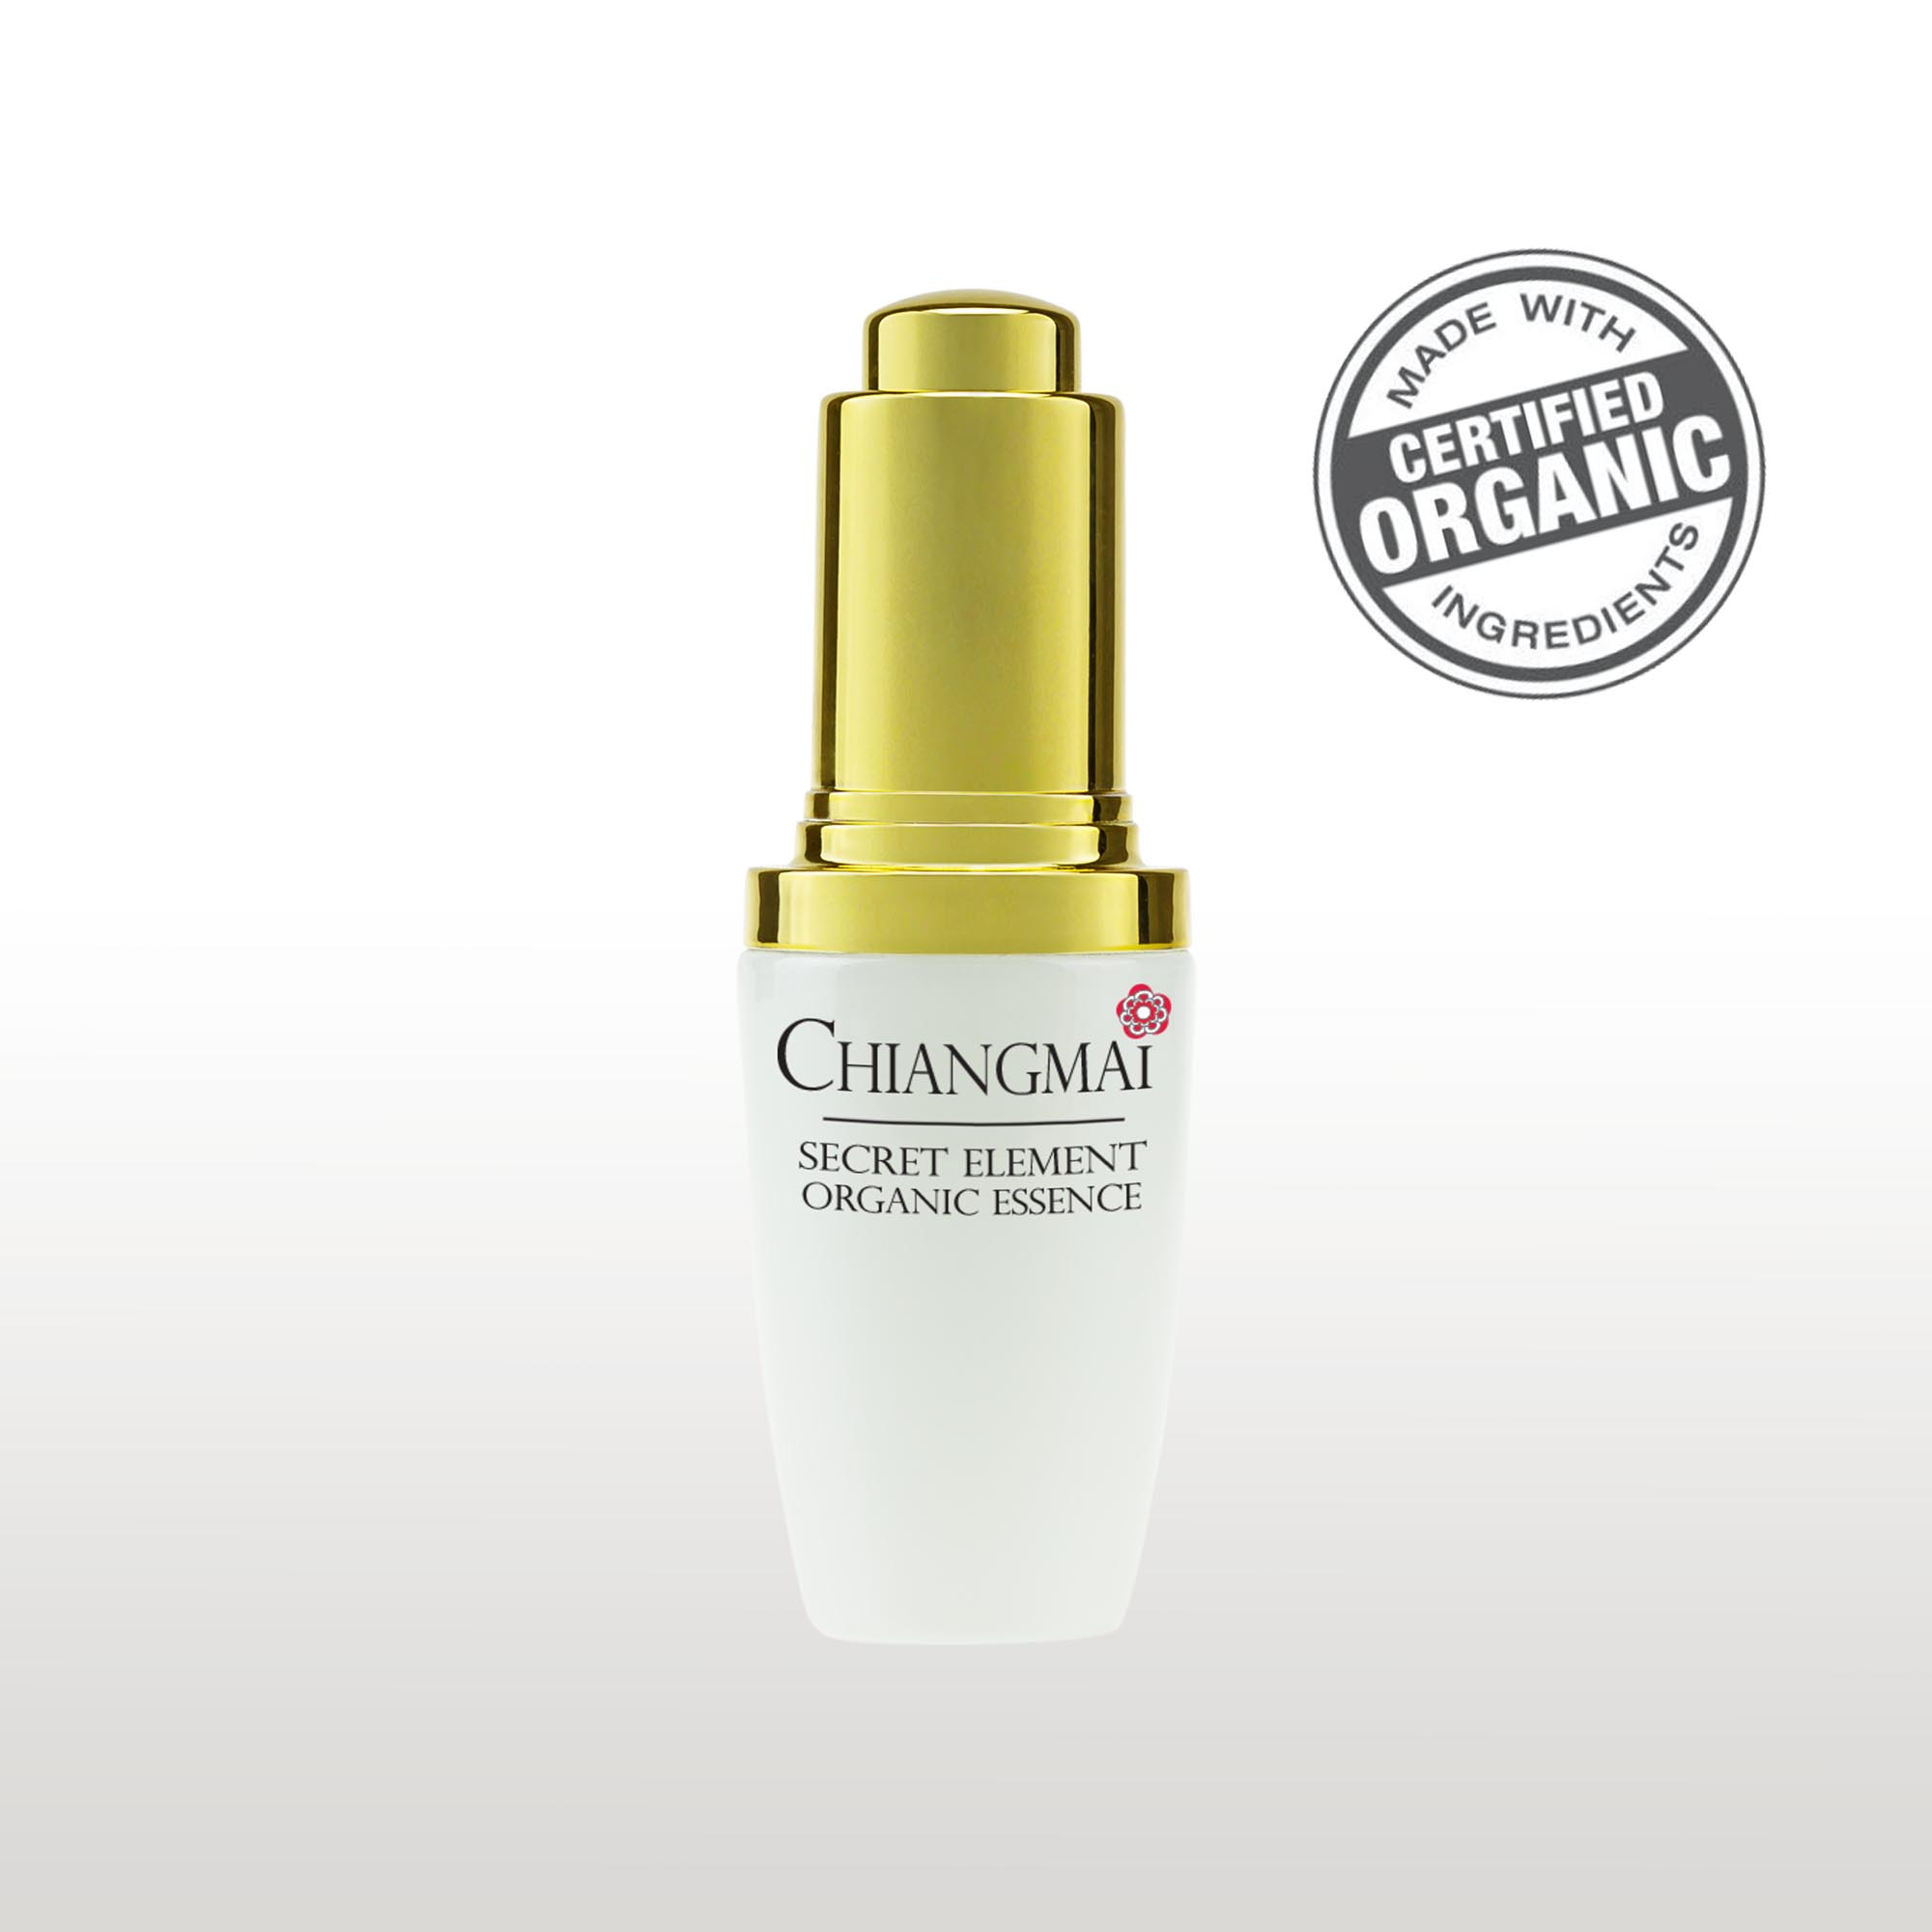 ChiangMai Secret Element Organic Essence